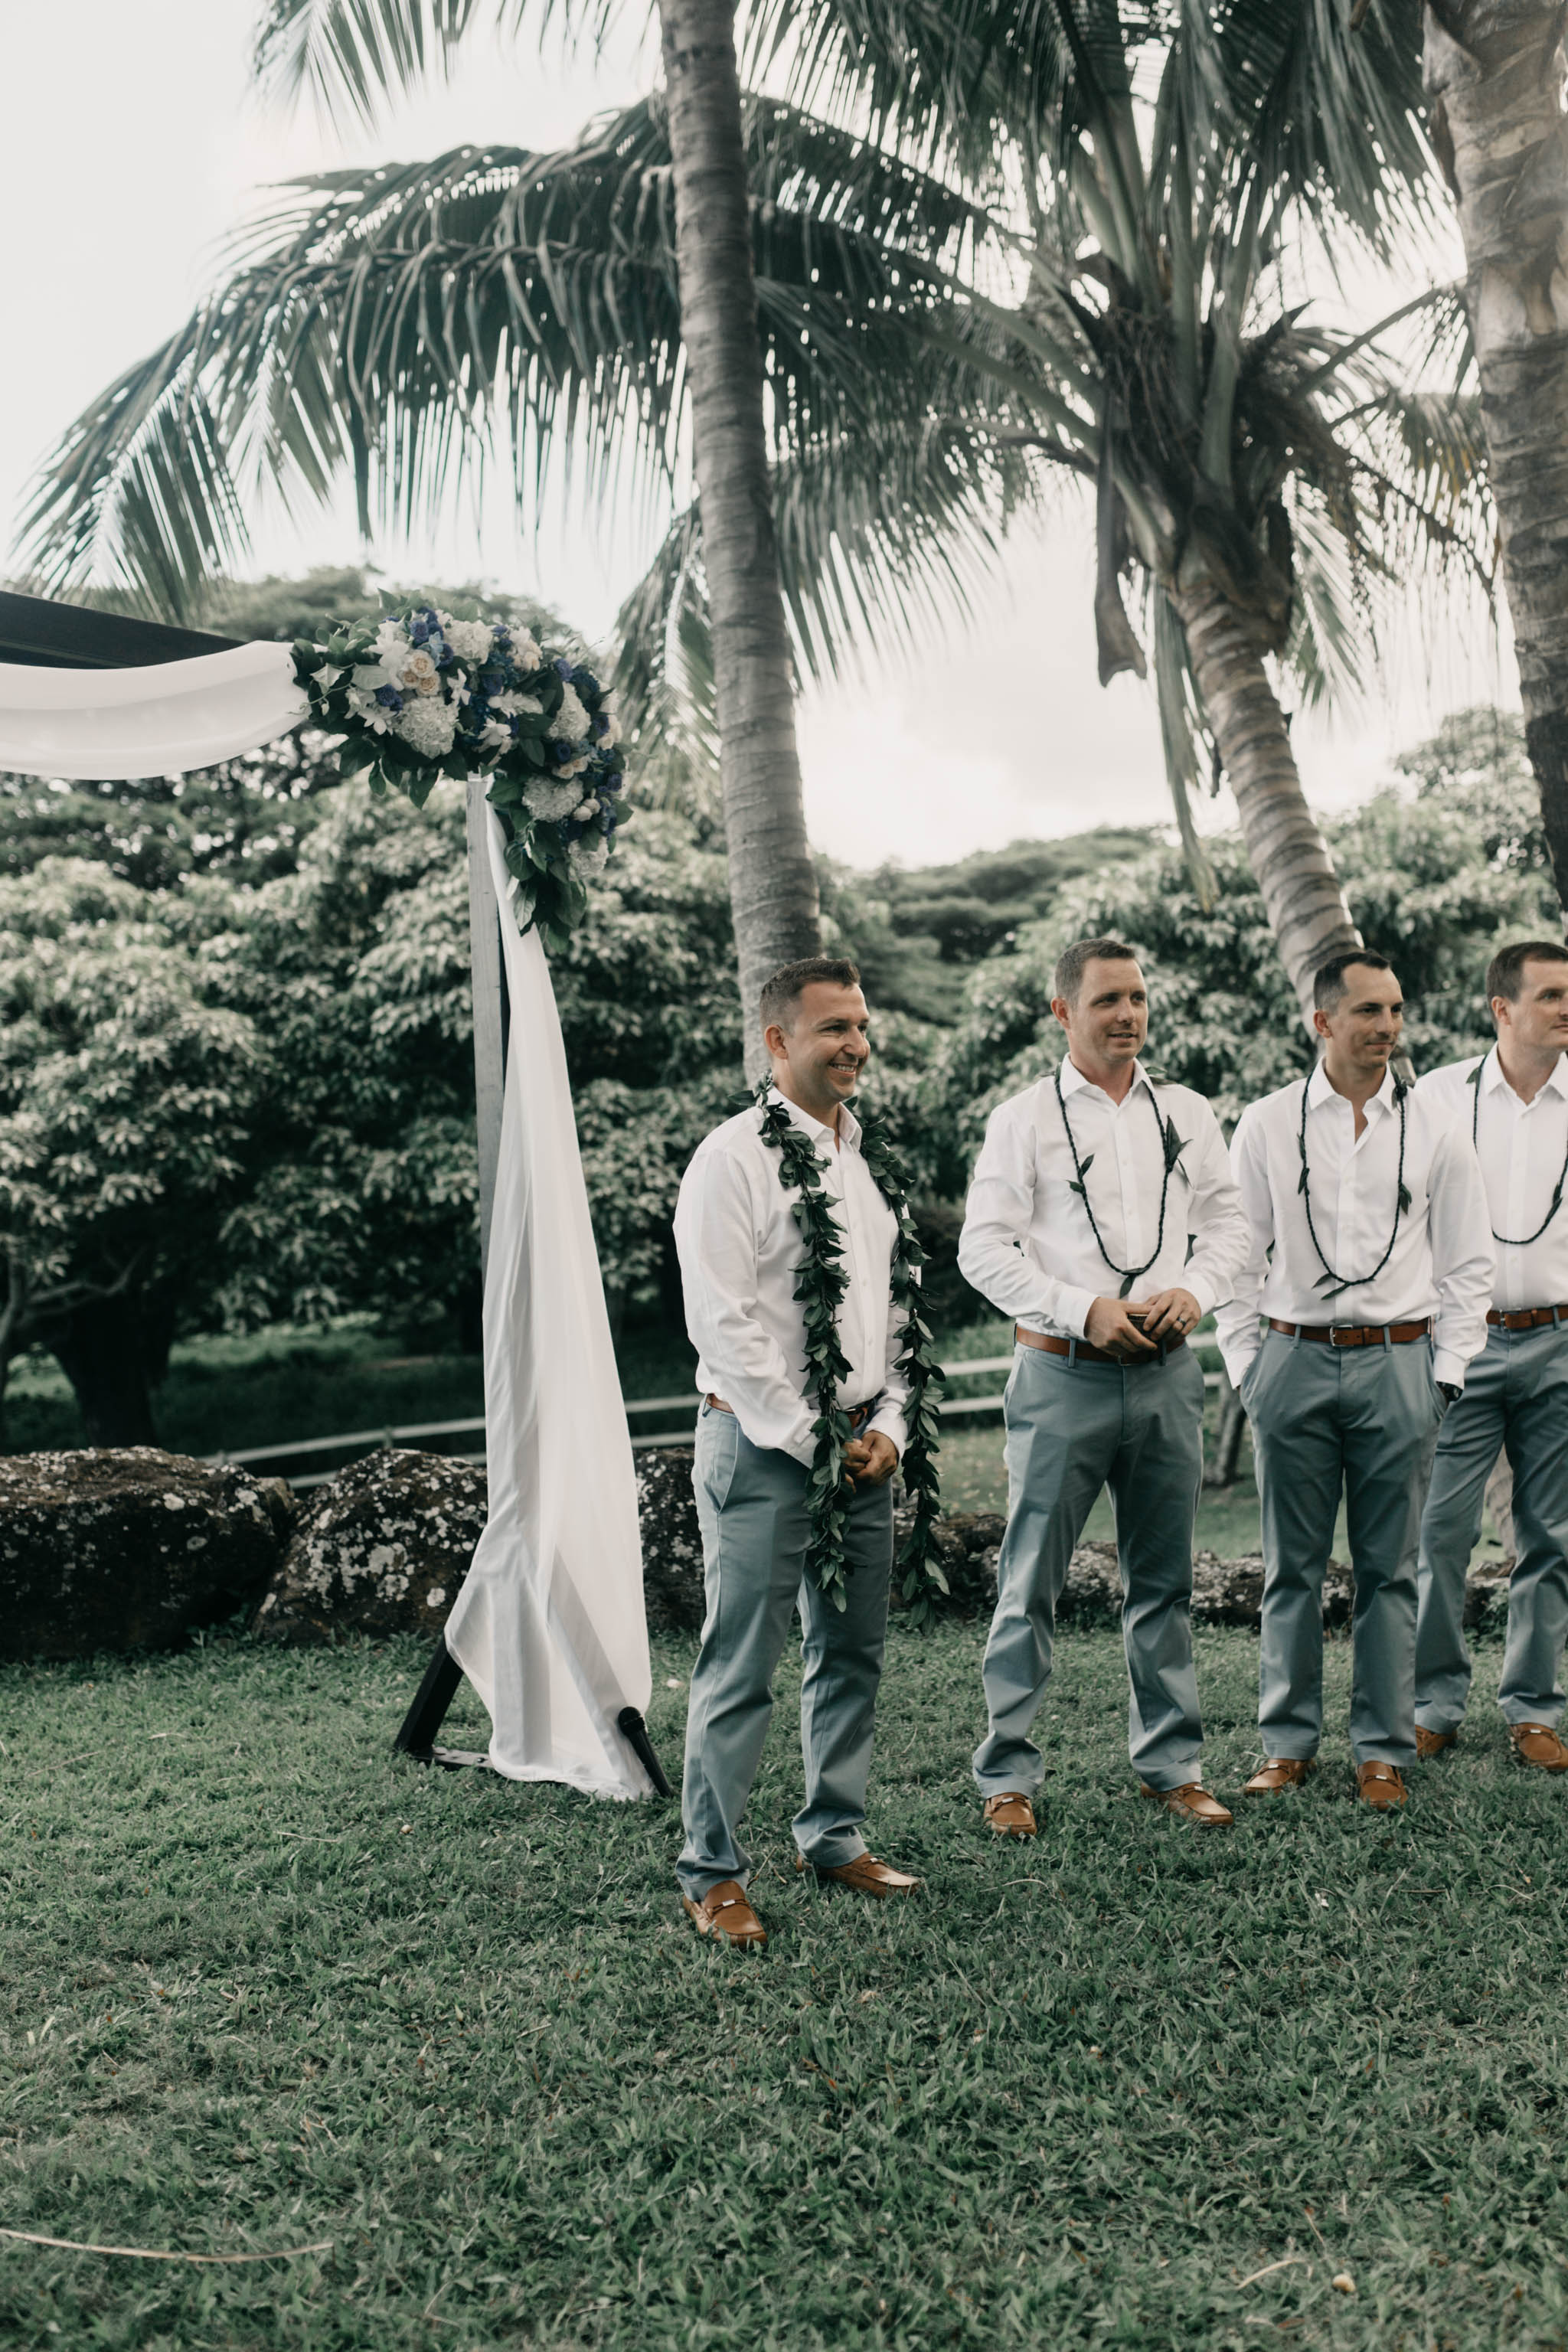 Groom's reaction seeing his bride walk down the aisle at Kualoa Ranch Paliku Gardens. Photography by Hawaii wedding photographer Desiree Leilani